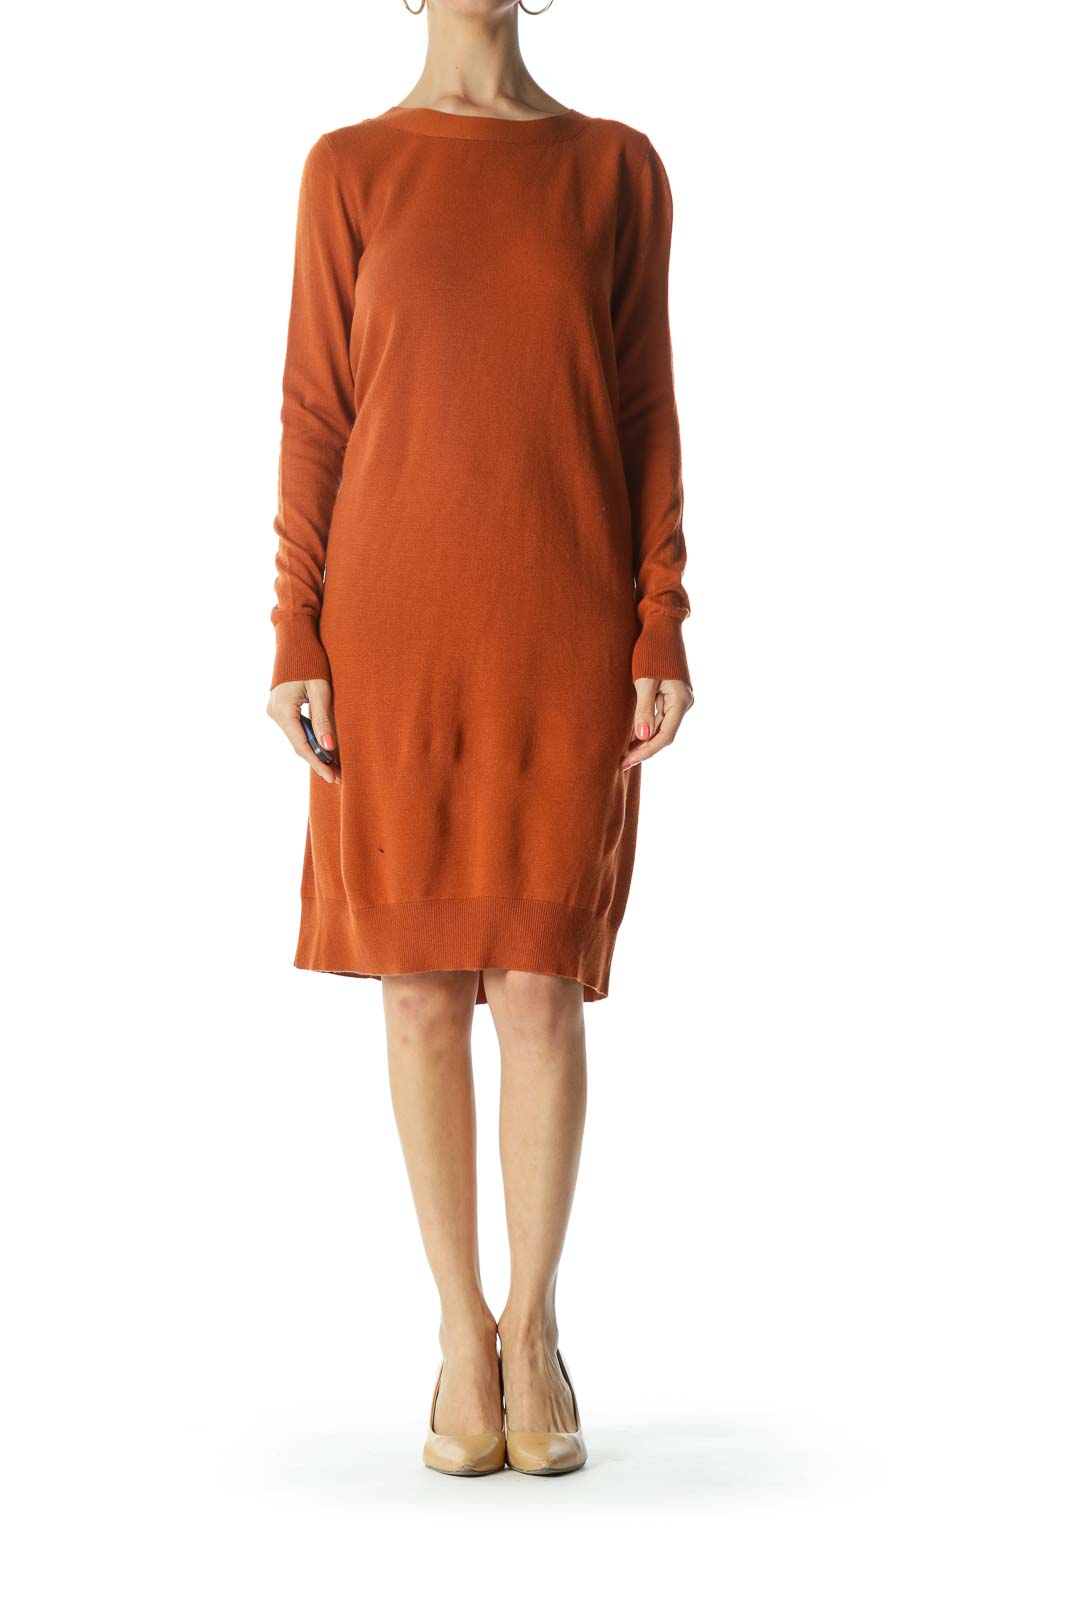 Burnt-Orange Back-V-Neck and Buttoned-Down Knit Dress